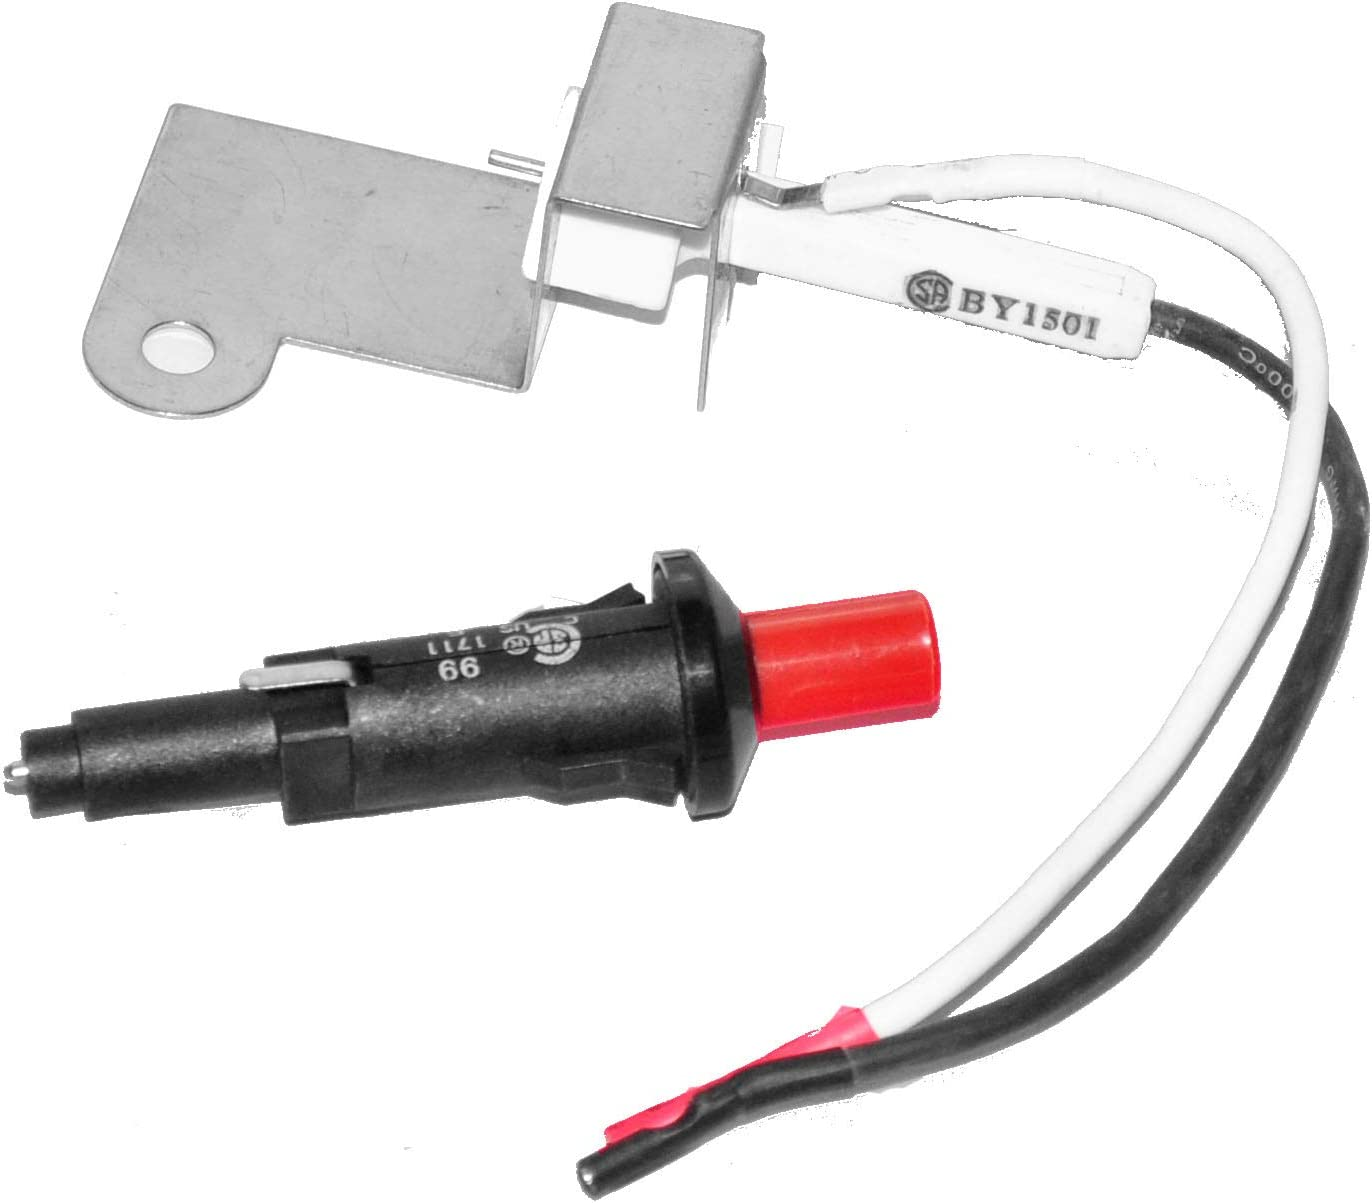 Weber Push Button Gas Grill Replacement Ignitor Spark Generator with Nut New